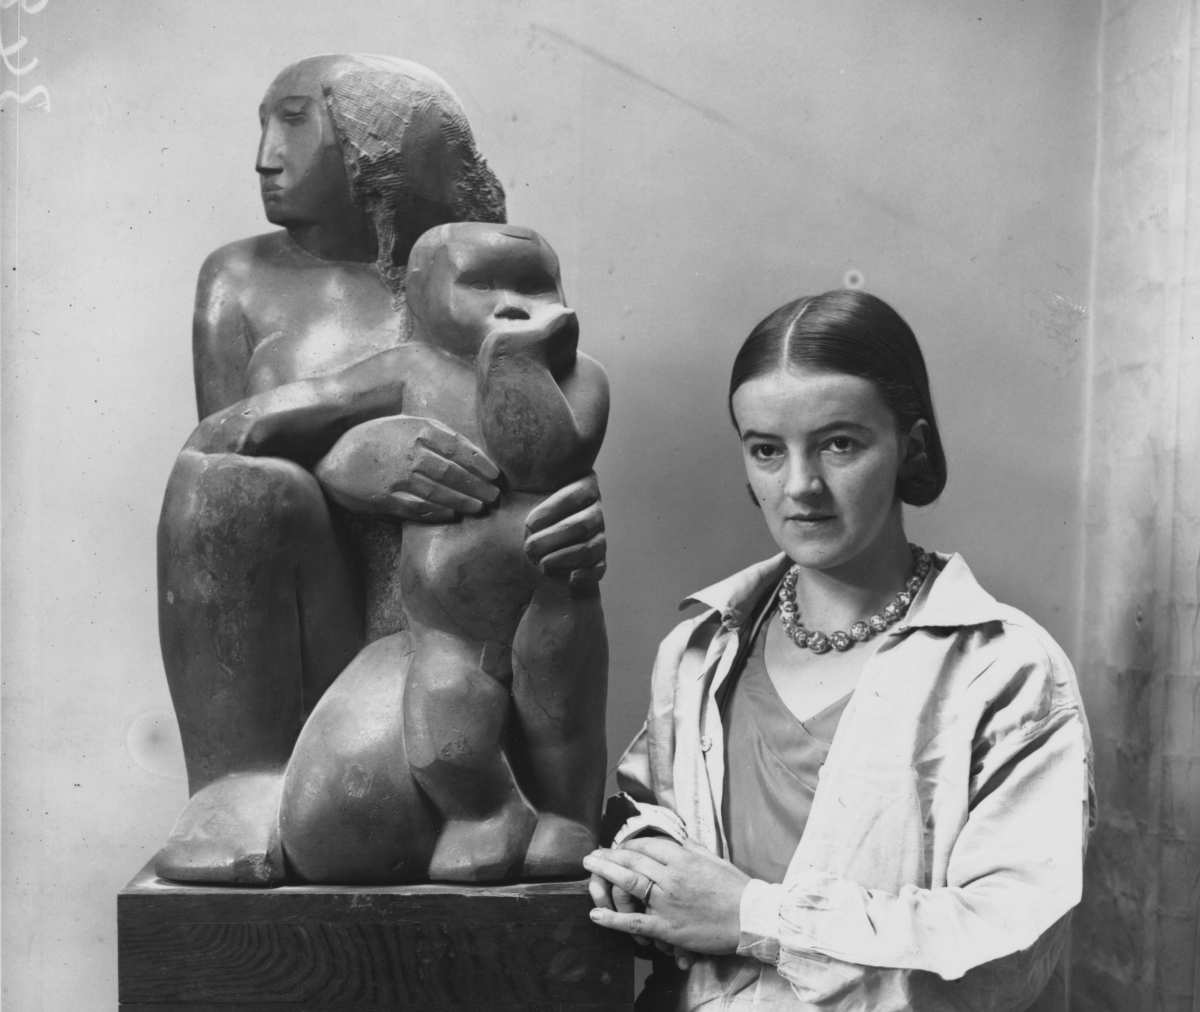 British sculptor Barbara Hepworth